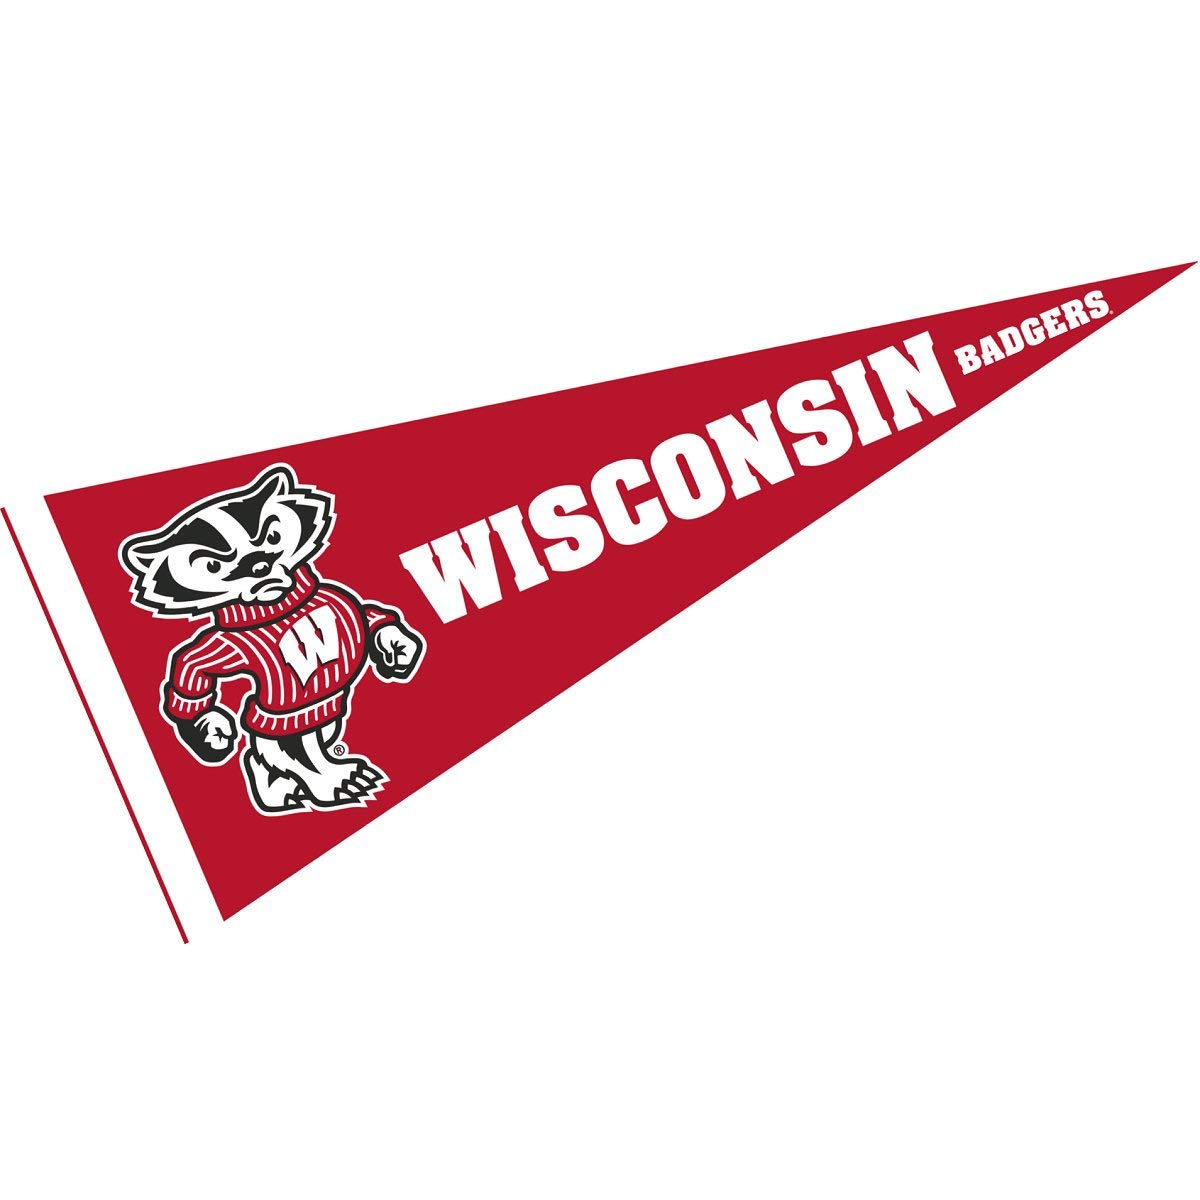 Buy Wisconsin Badgers Bucky Badger 24x18 Football Poster Authentic